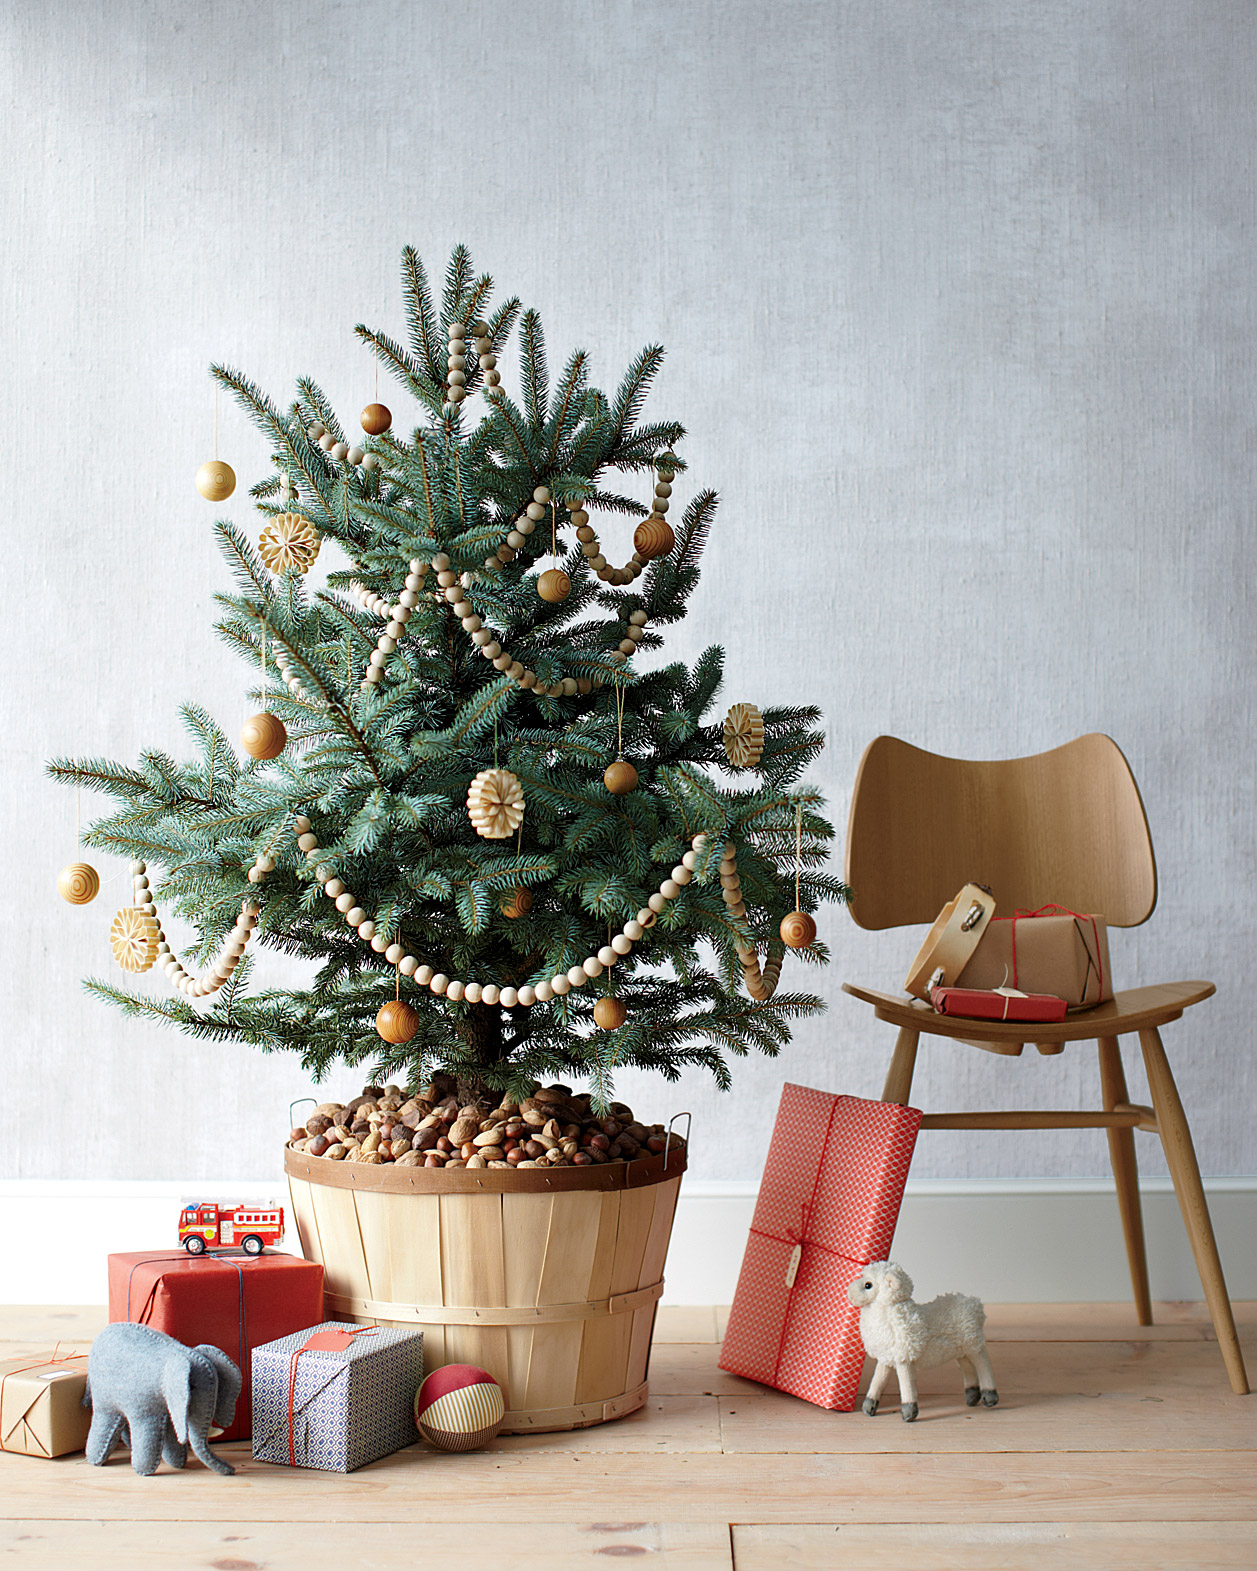 5 Tips to Keeping Your Christmas Tree Fresh Through December